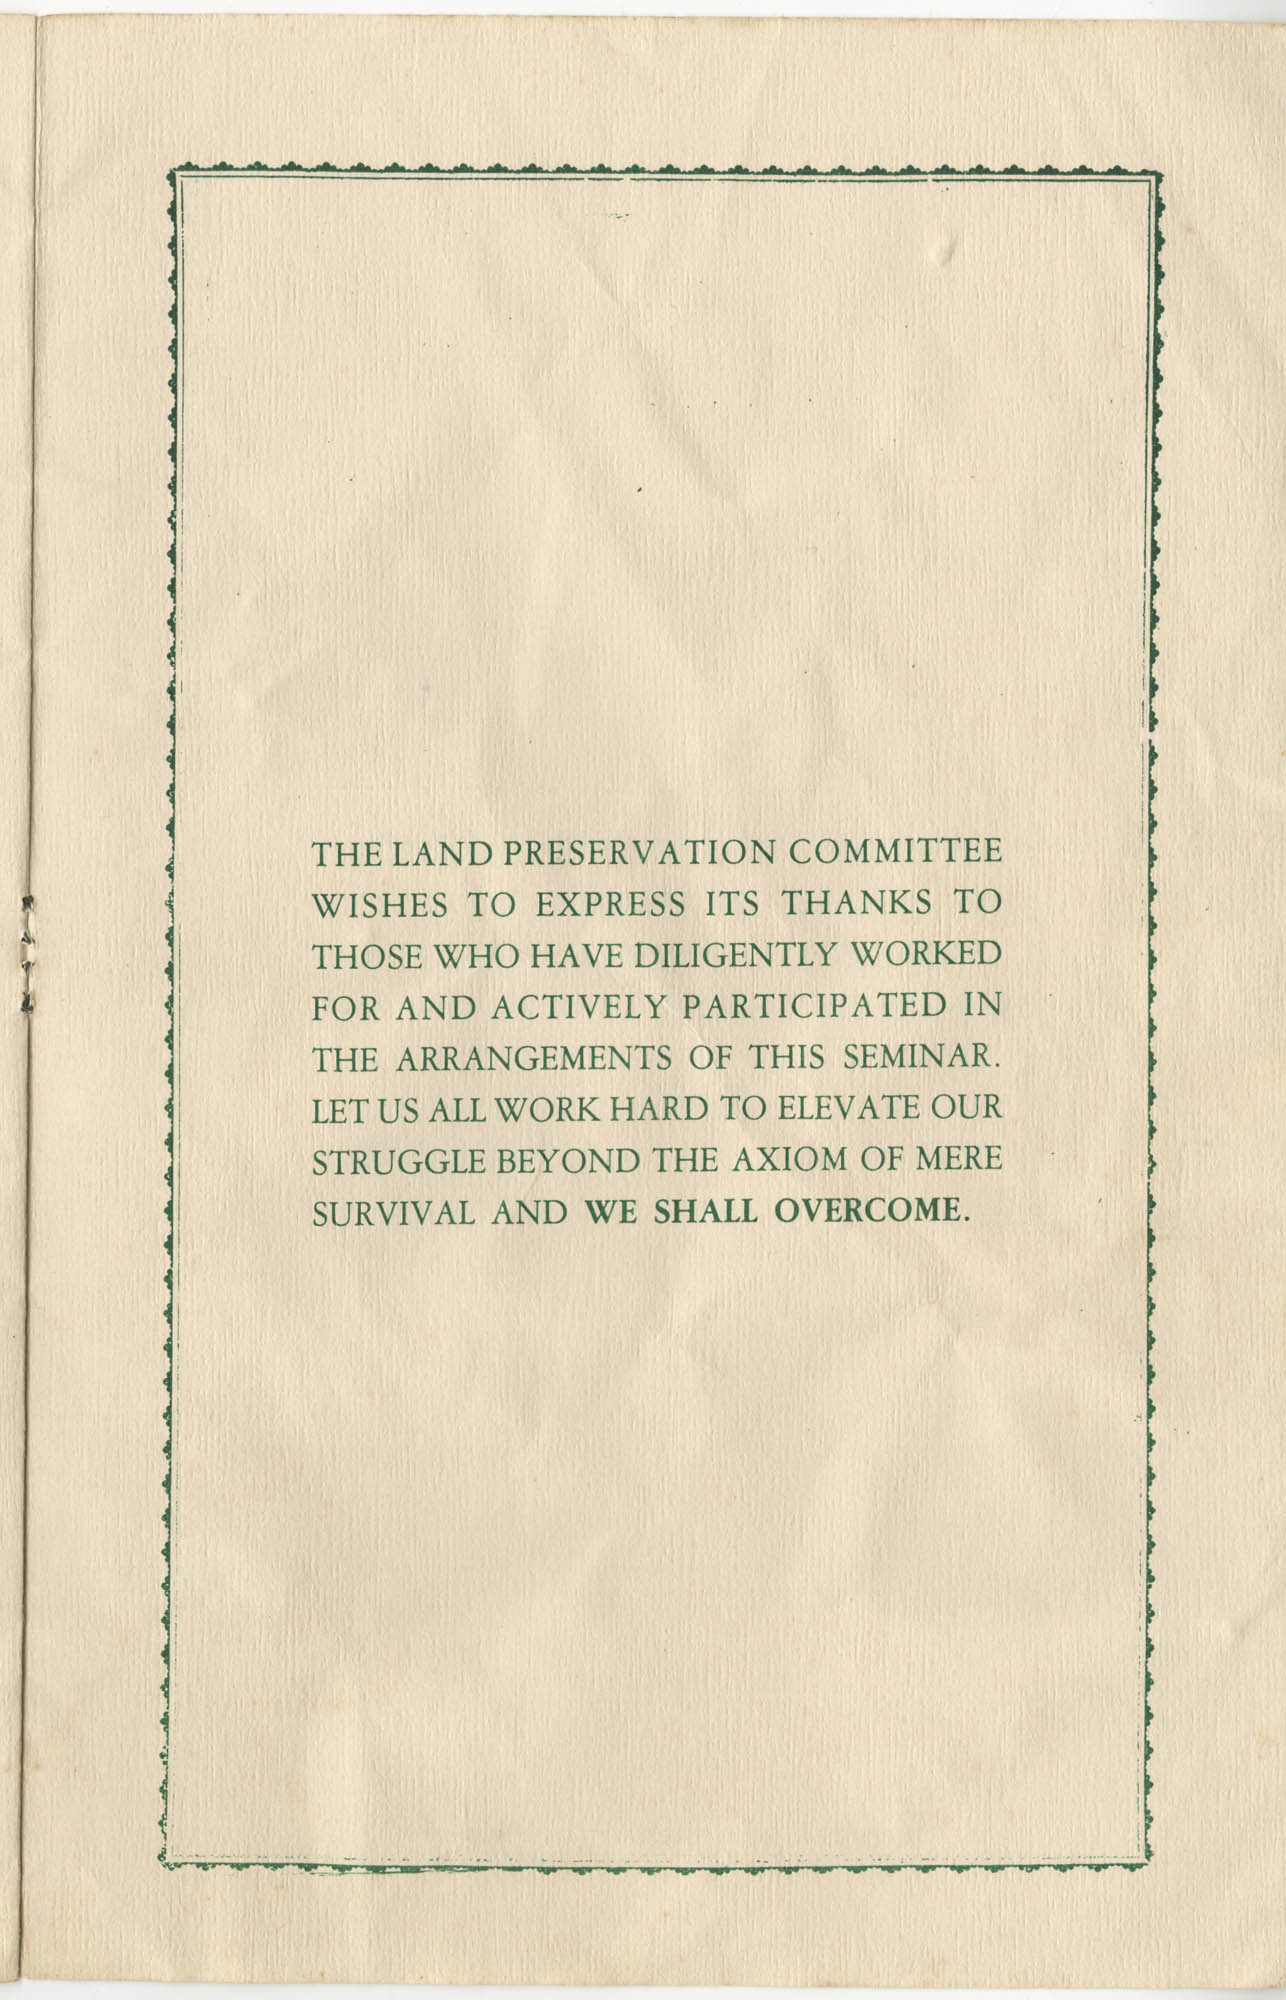 The Second Annual Land Preservation Seminar, Page 6